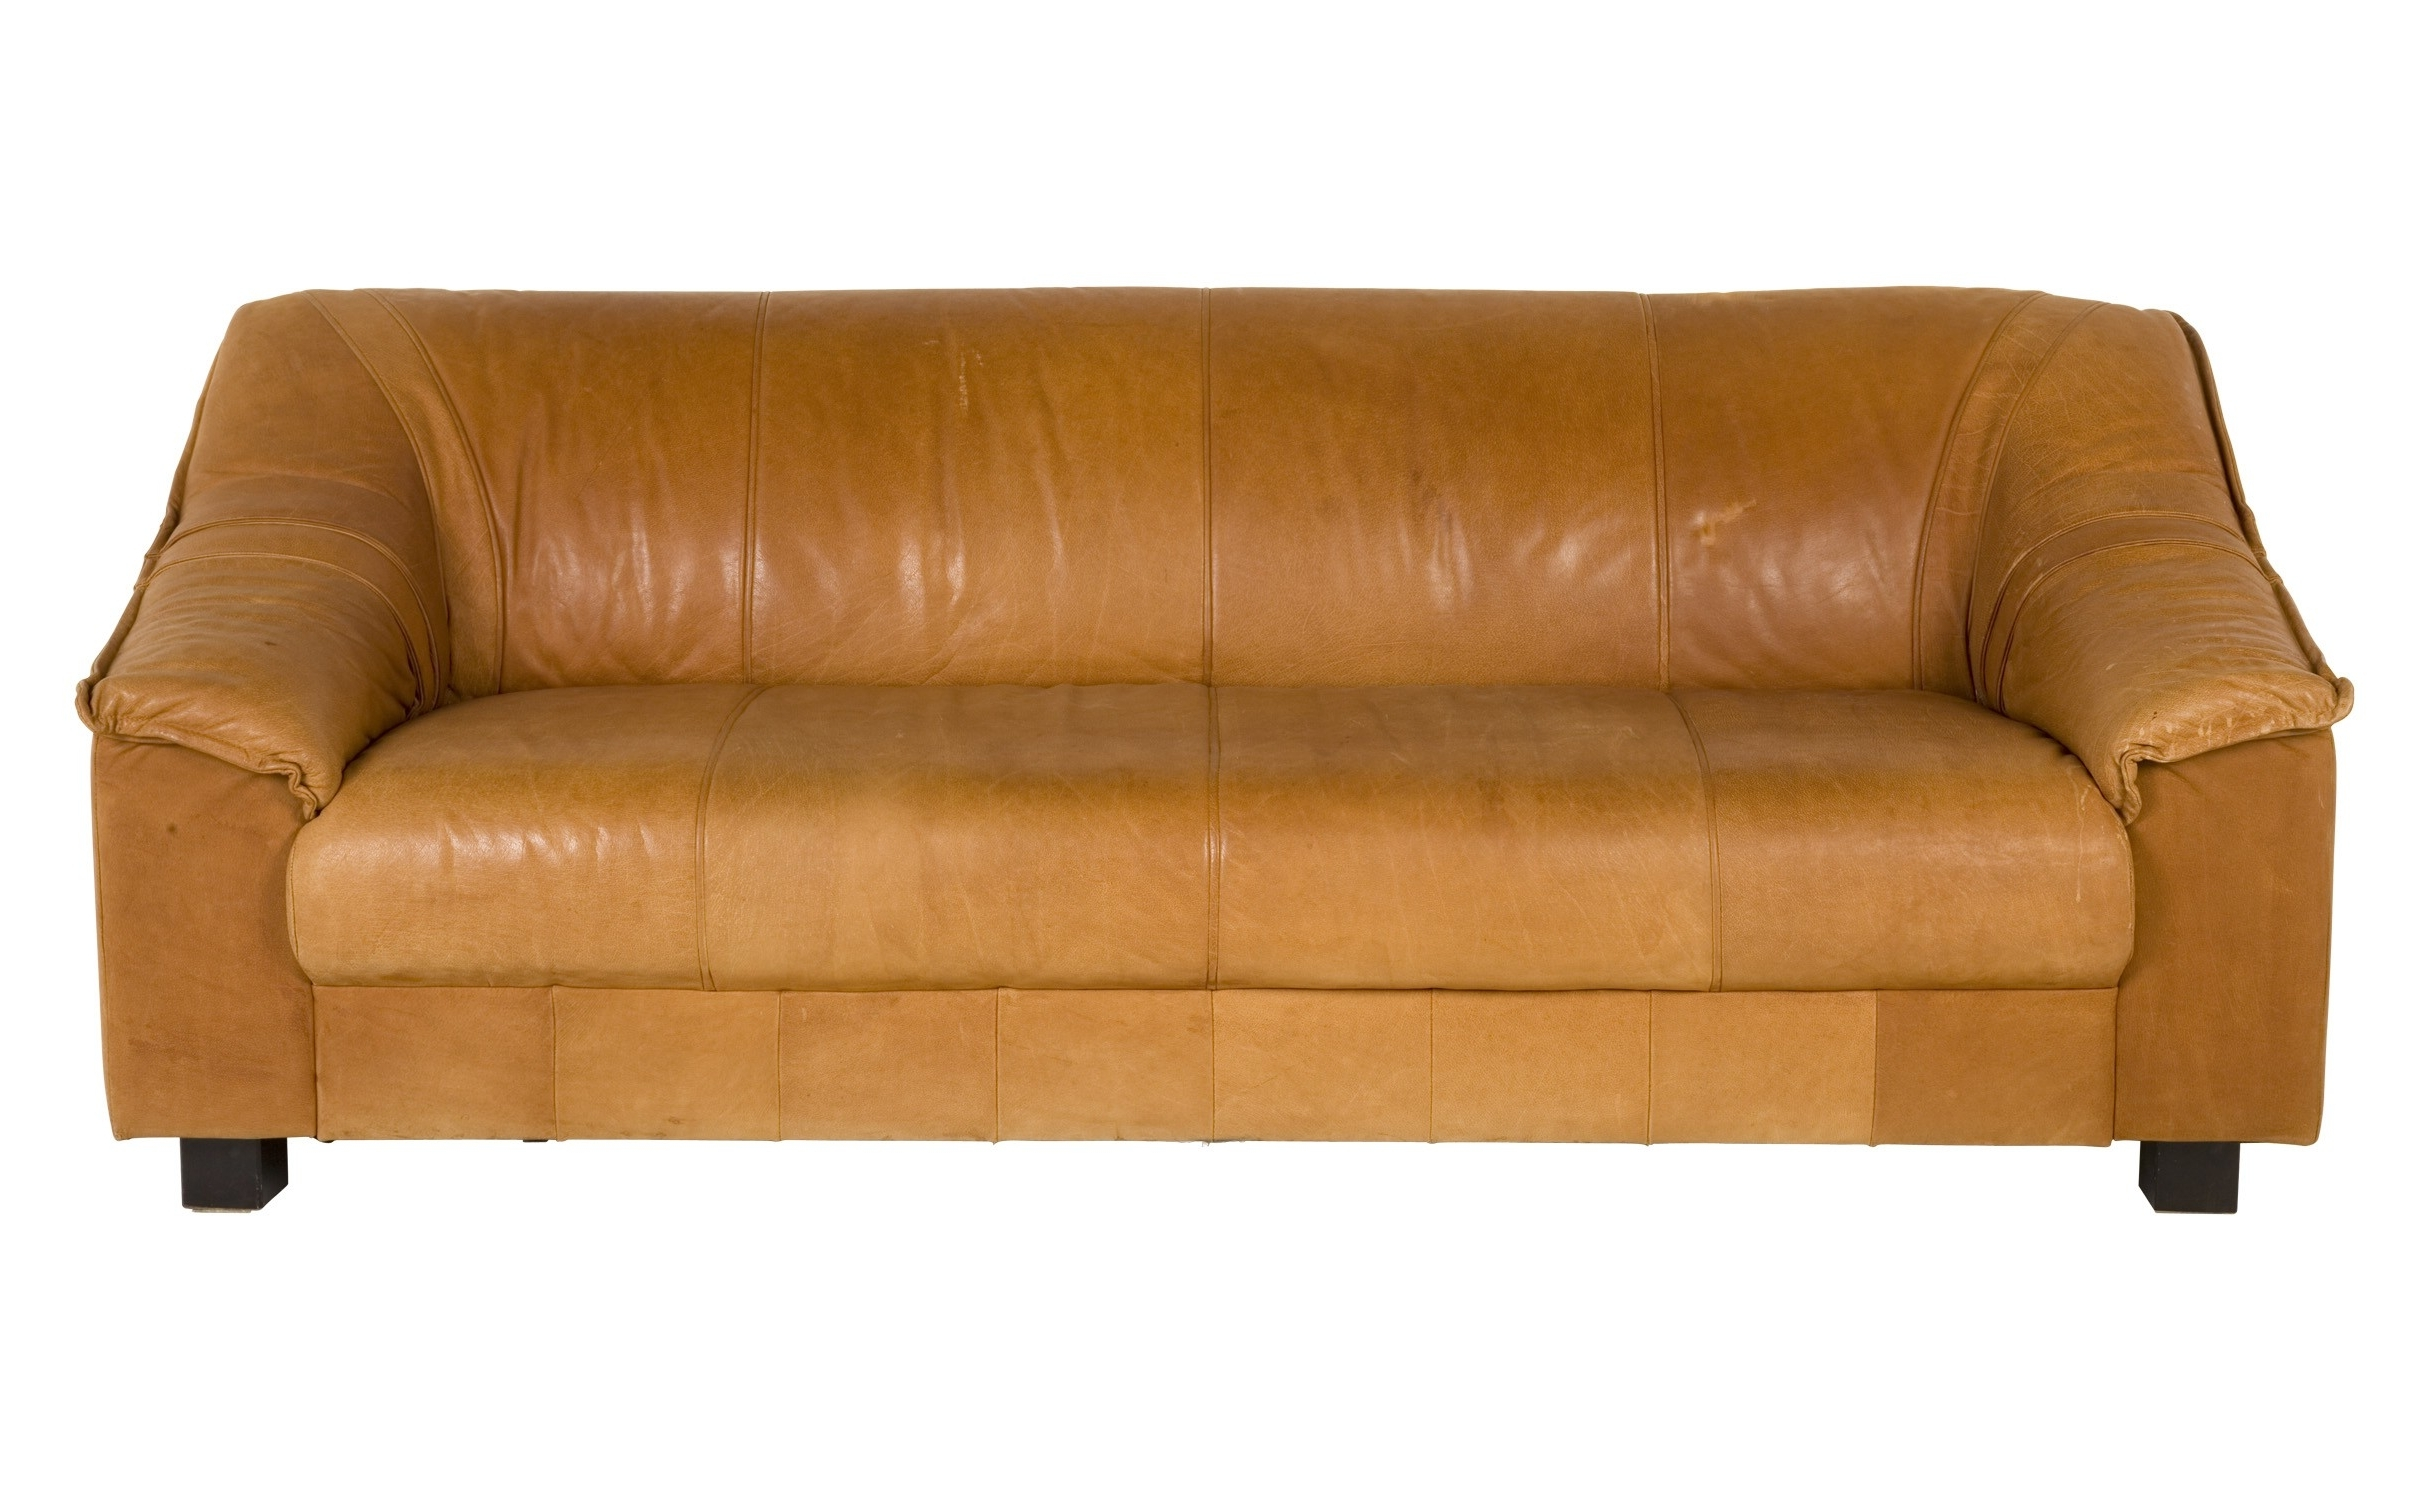 Light Tan Leather Sofas With Regard To Most Recently Released Vintage Tan Leather Sofa (View 4 of 15)